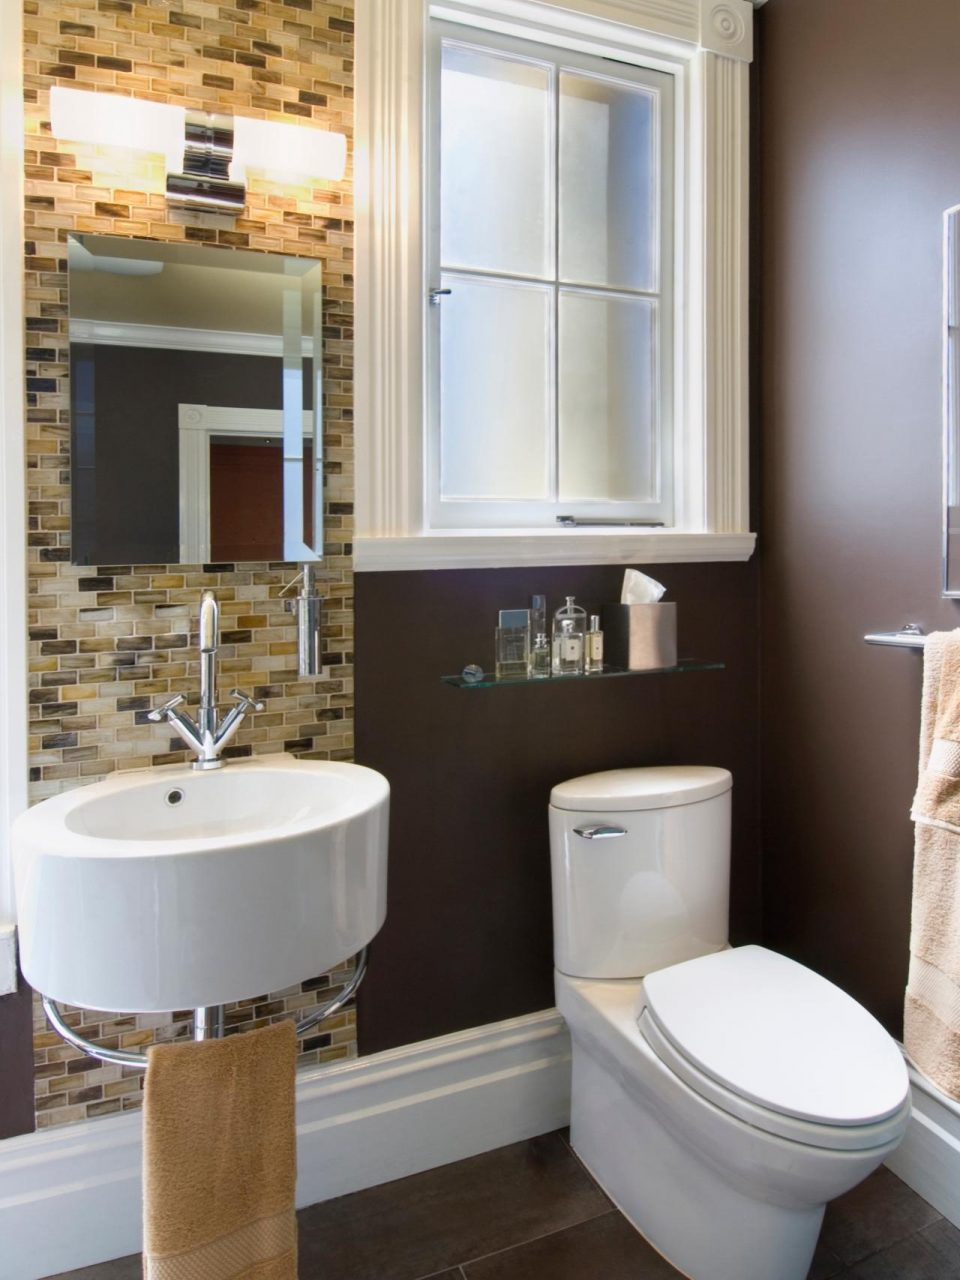 Pictures Of Small Bathroom Remodels Floresvaesco